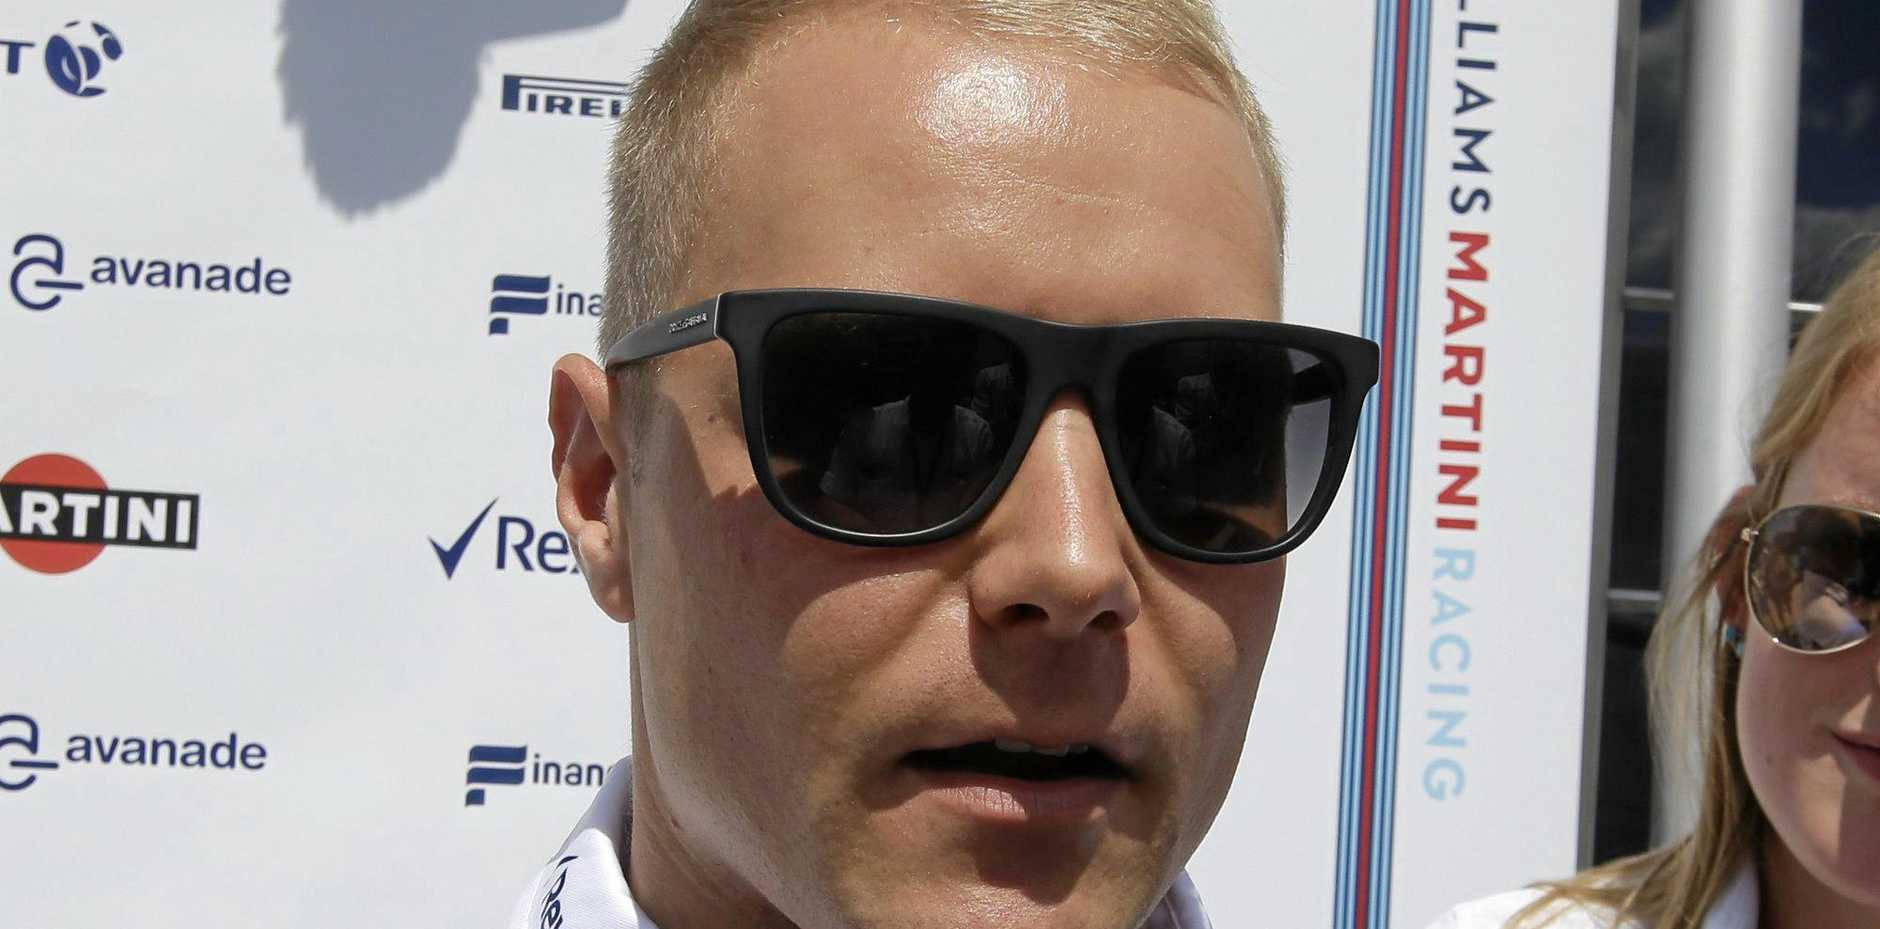 Valtteri Bottas of Finland will race alongside three-time champion Lewis Hamilton at Formula One team Mercedes in 2017.